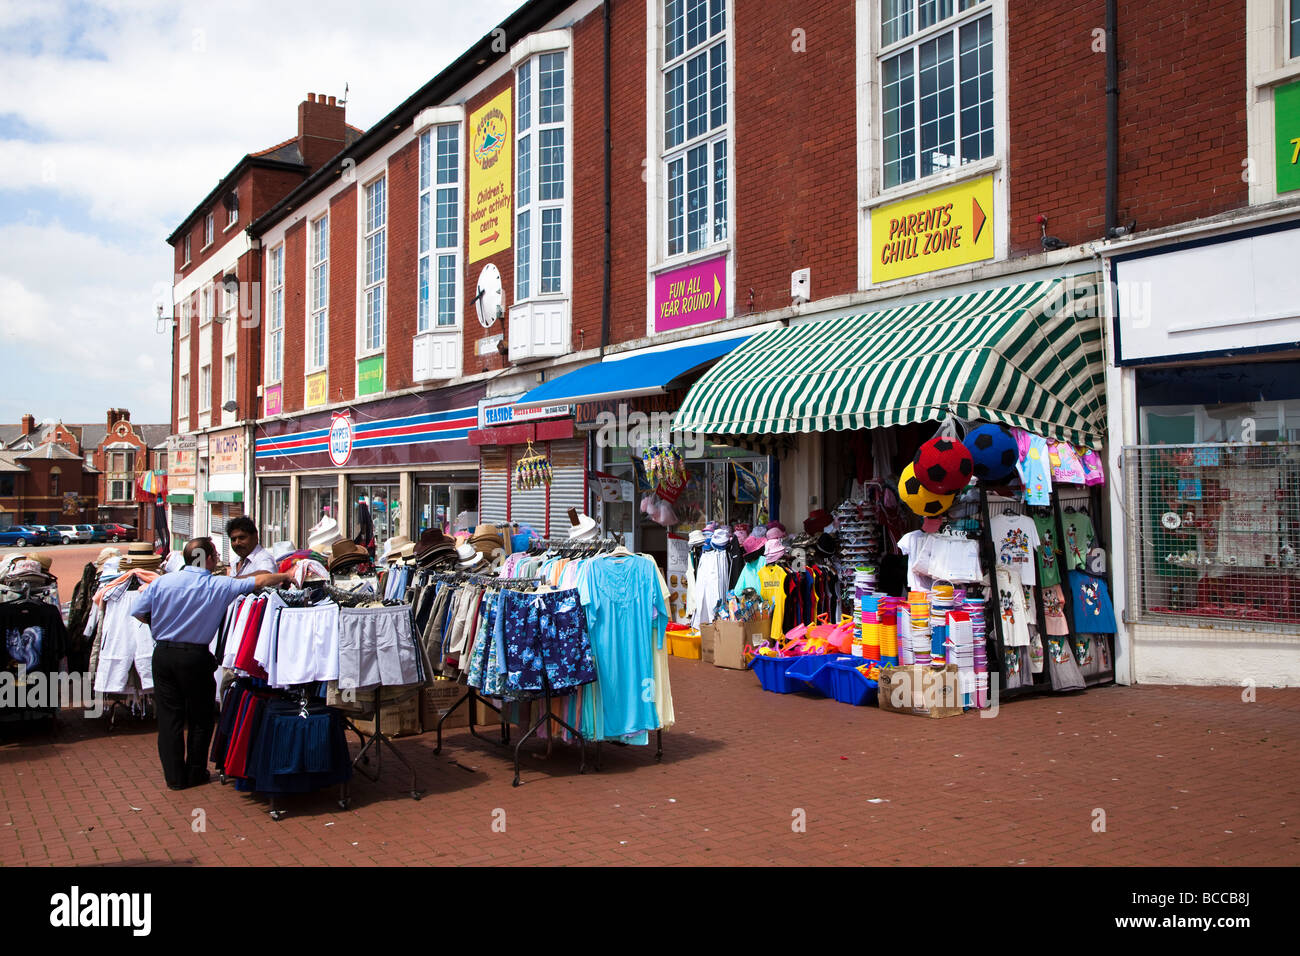 Street trader selling clothes outside shop on sea front Barry island Wales UK - Stock Image